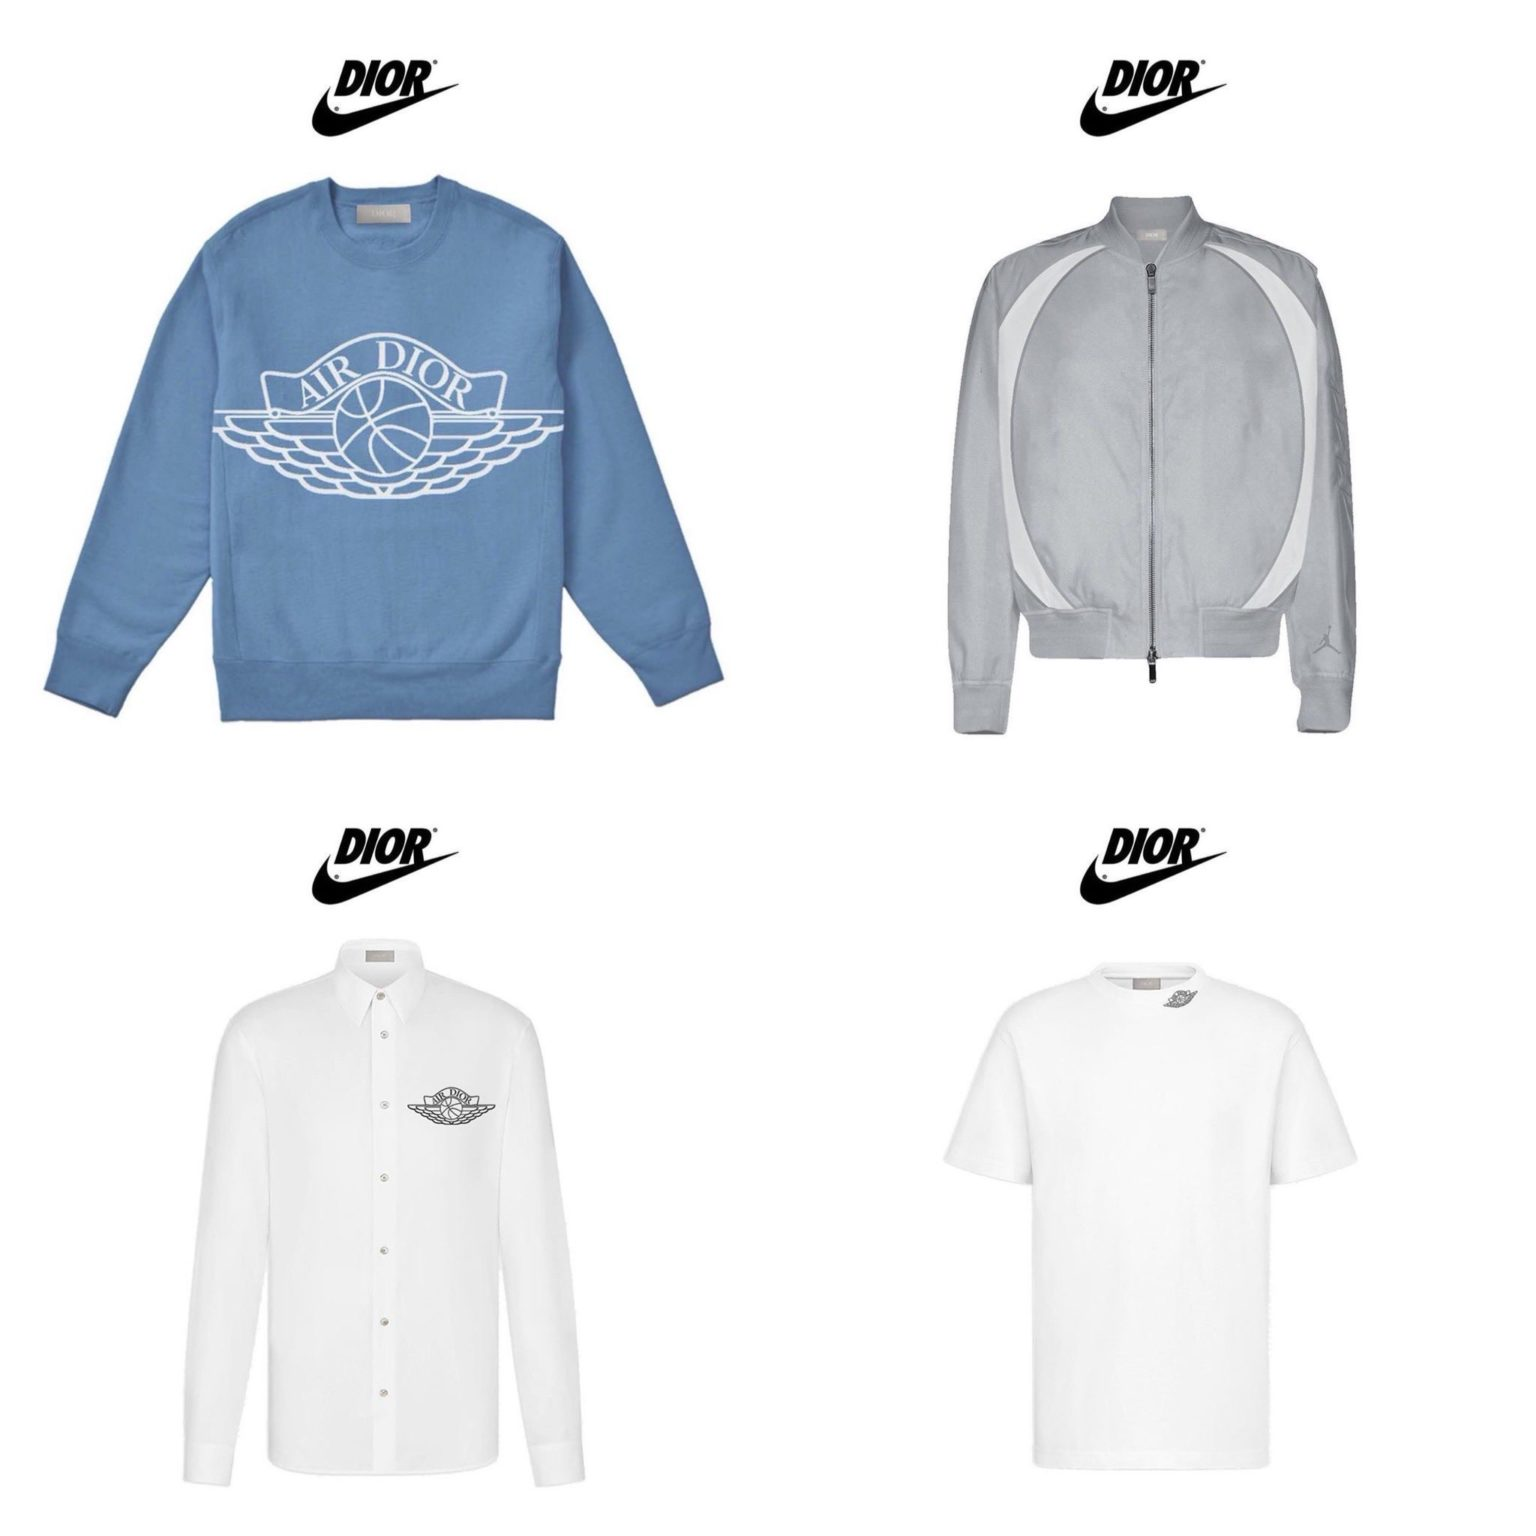 Dior Air Jordan 1 Apparel Collection